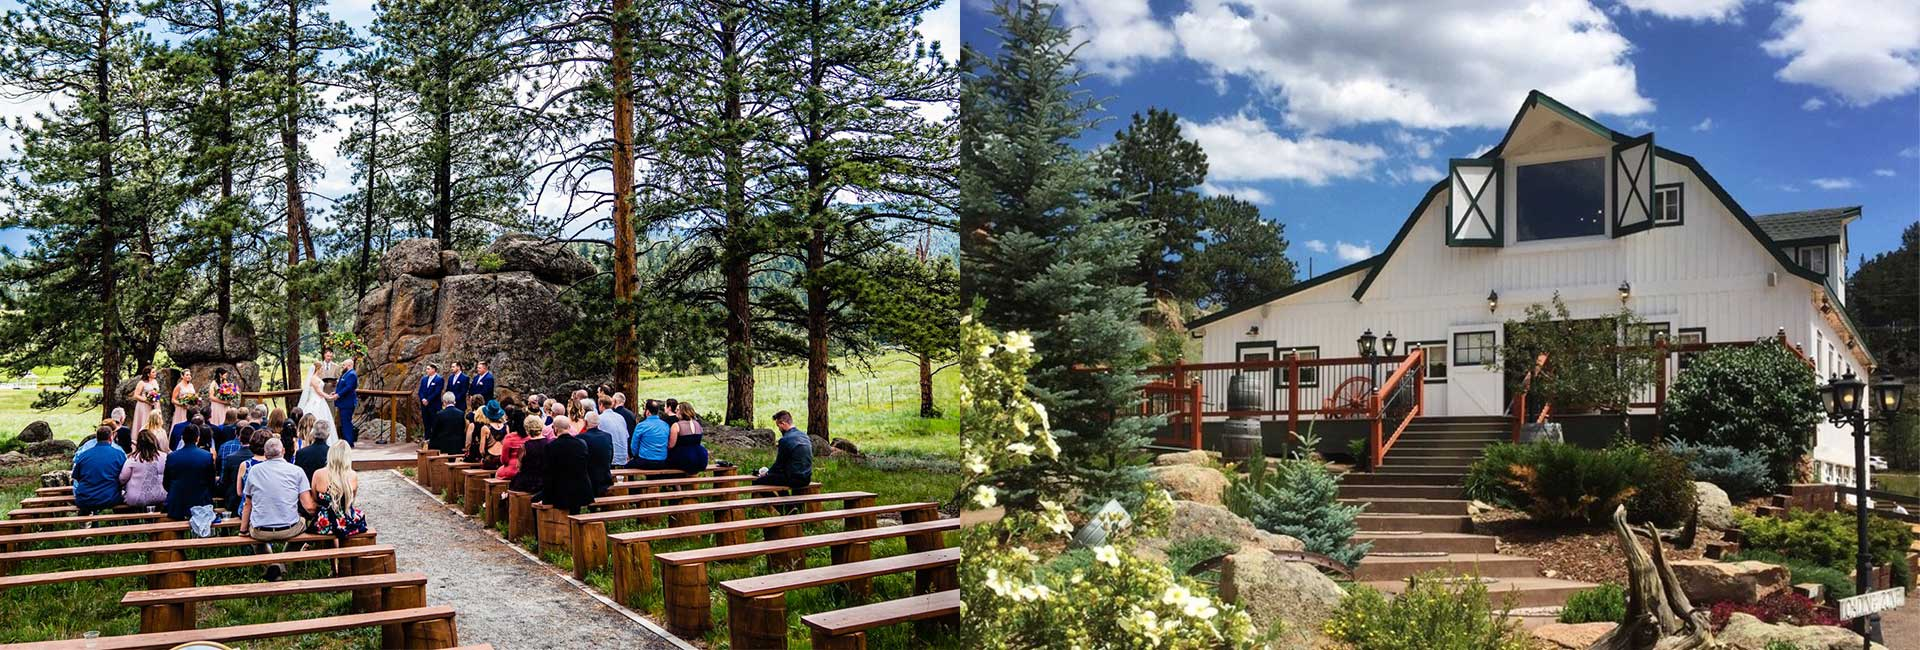 colorado wedding venue sites